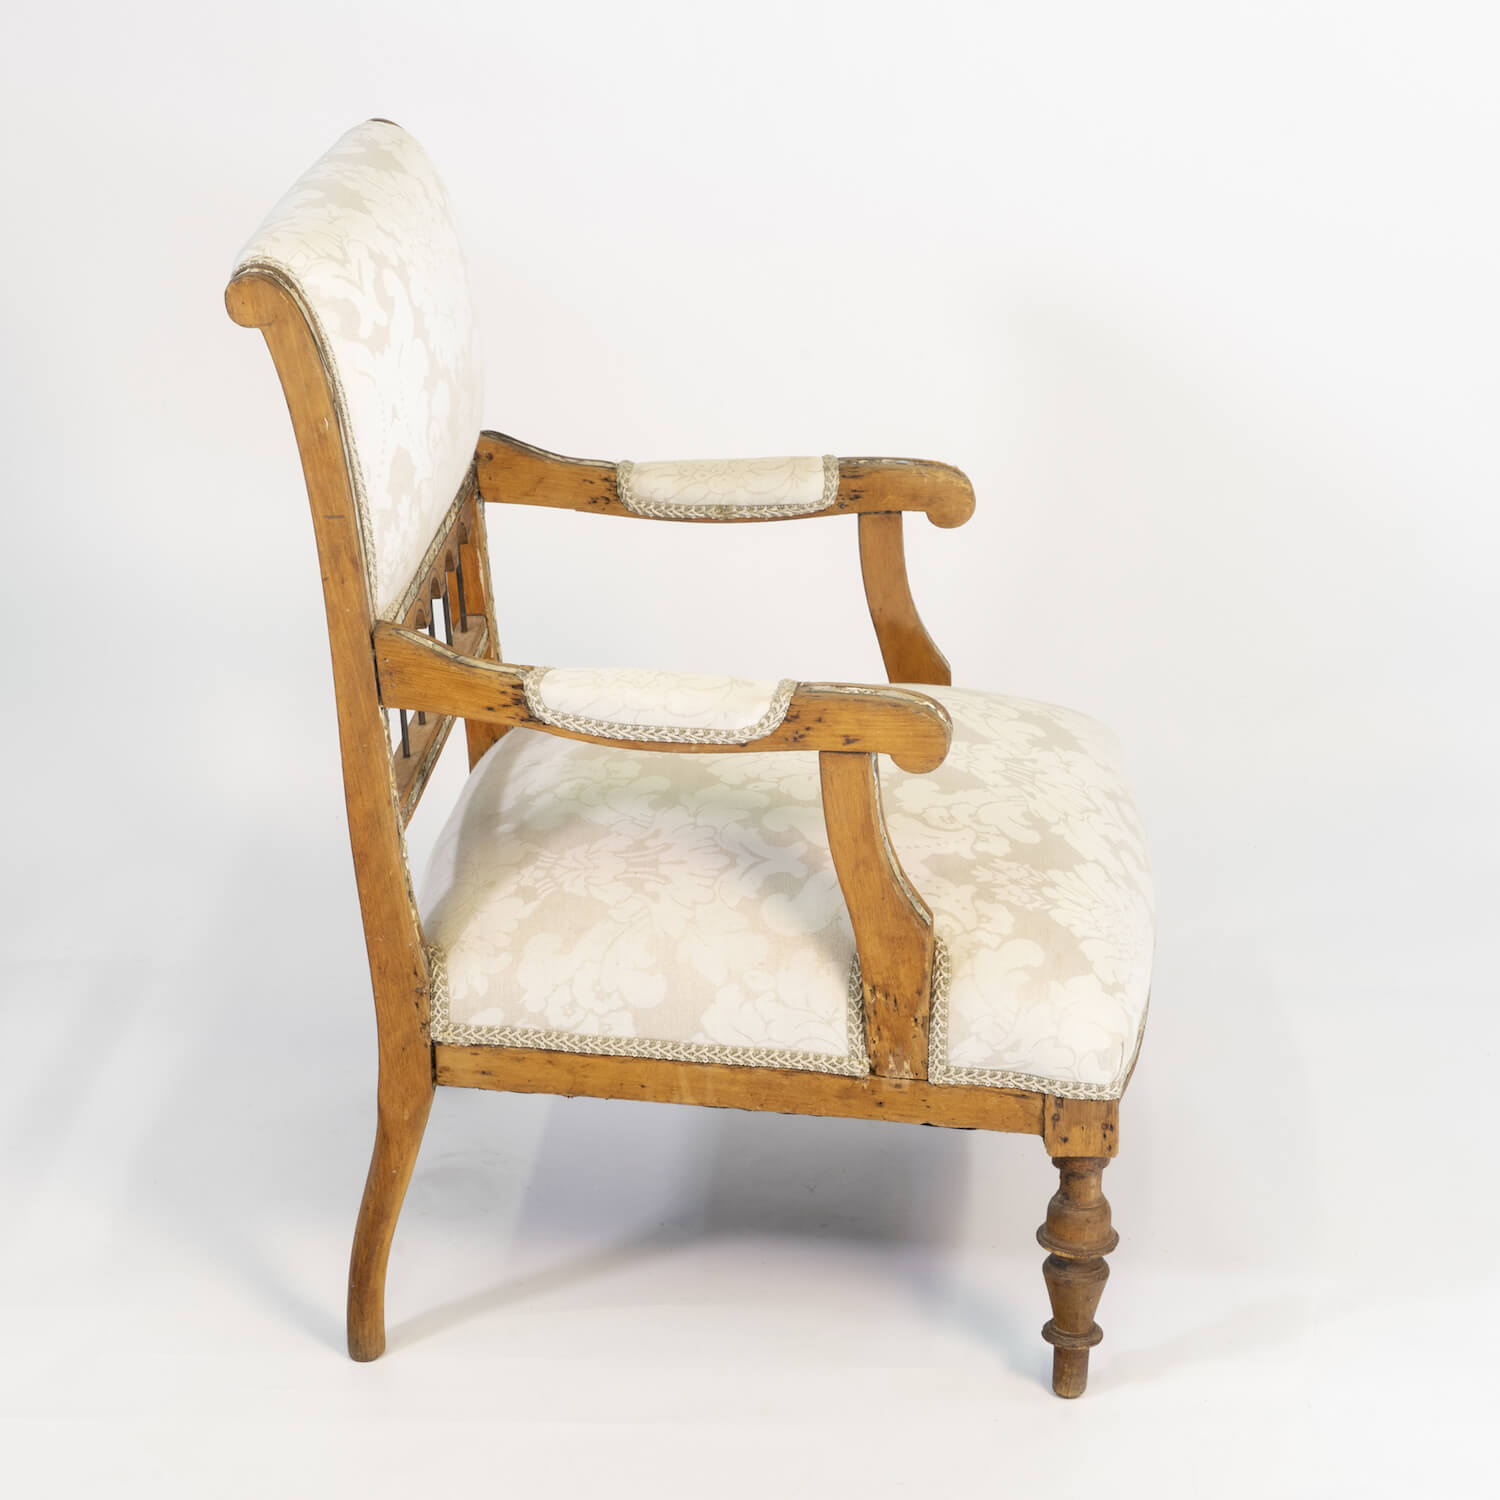 Pair Of Anglo Indian Arm Chairs, Circa 1900